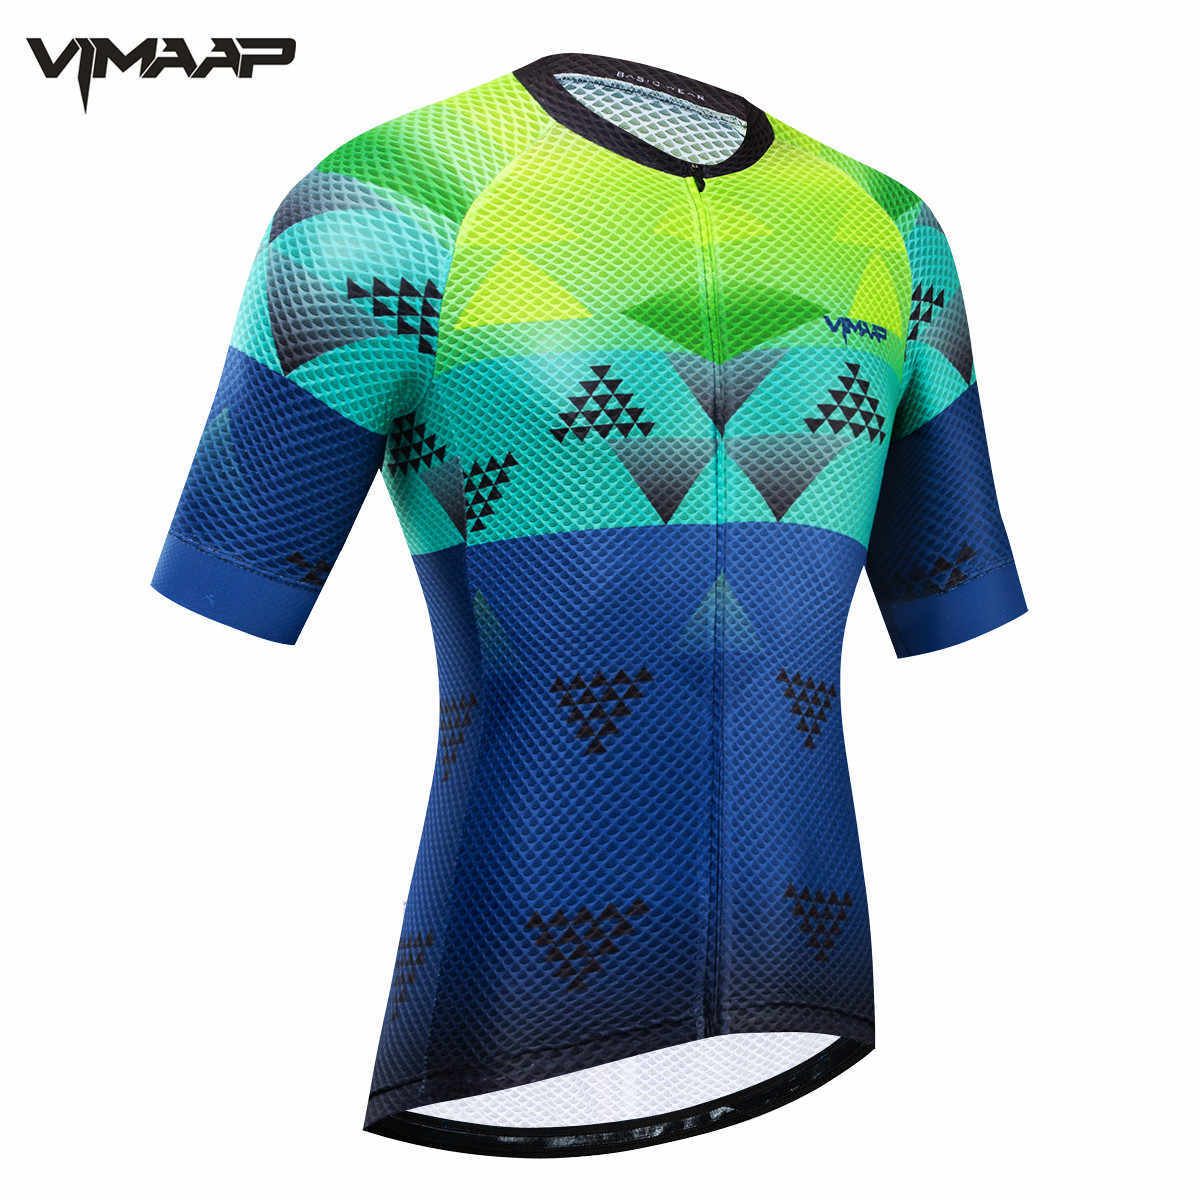 2020 Cycling Jersey Mens Quick Dry Short Sleeve Shirt bike Clothing Bicycle Tops